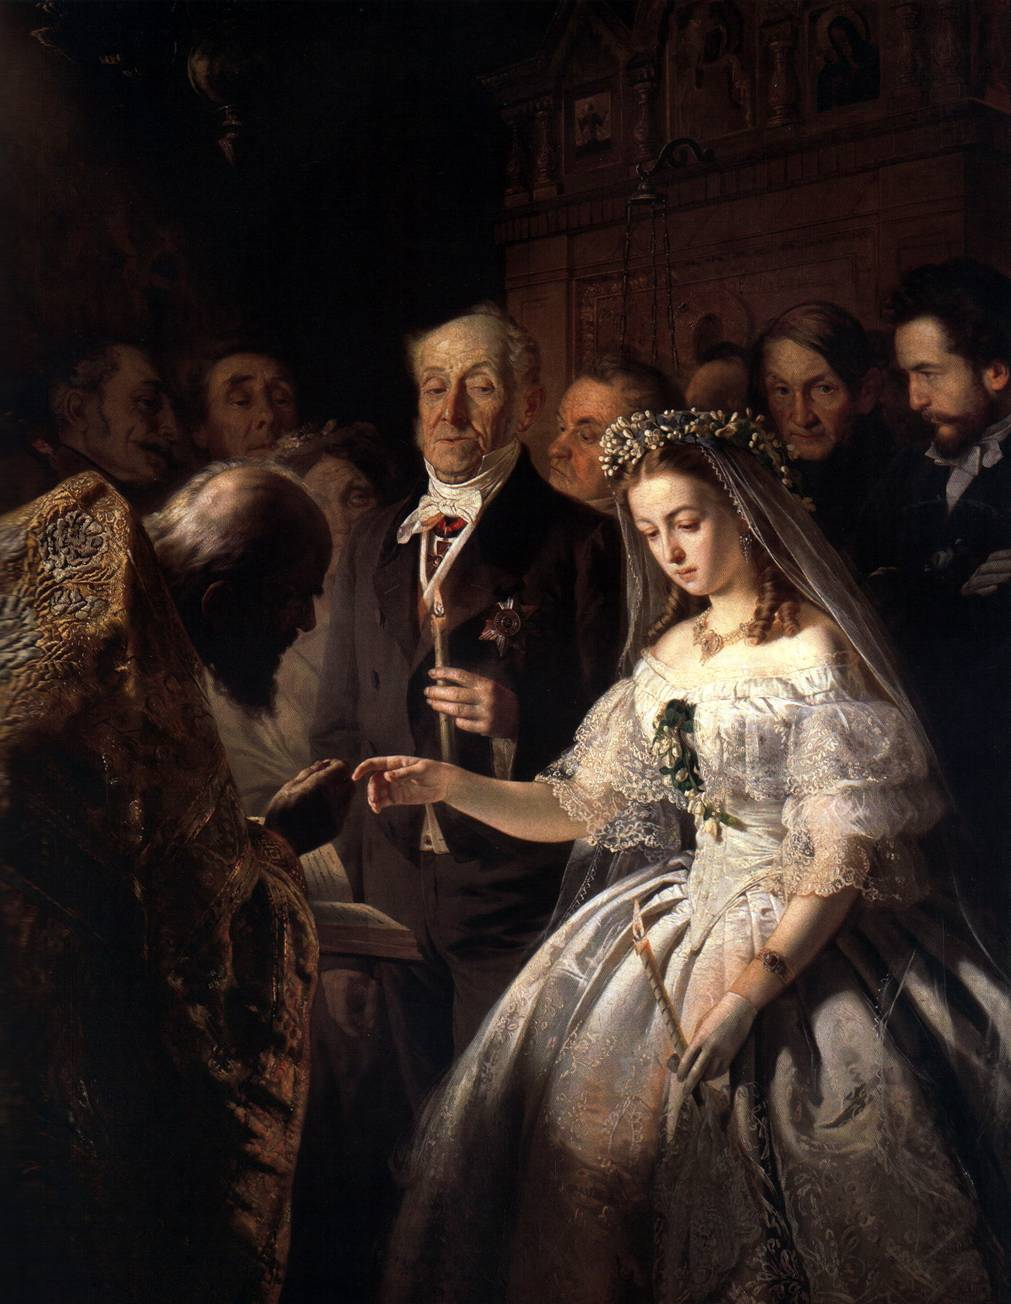 Unequal marriage, a 19th-century painting by Russian artist Pukirev. It depicts an arranged marriage where a young girl is forced to marry someone against their will